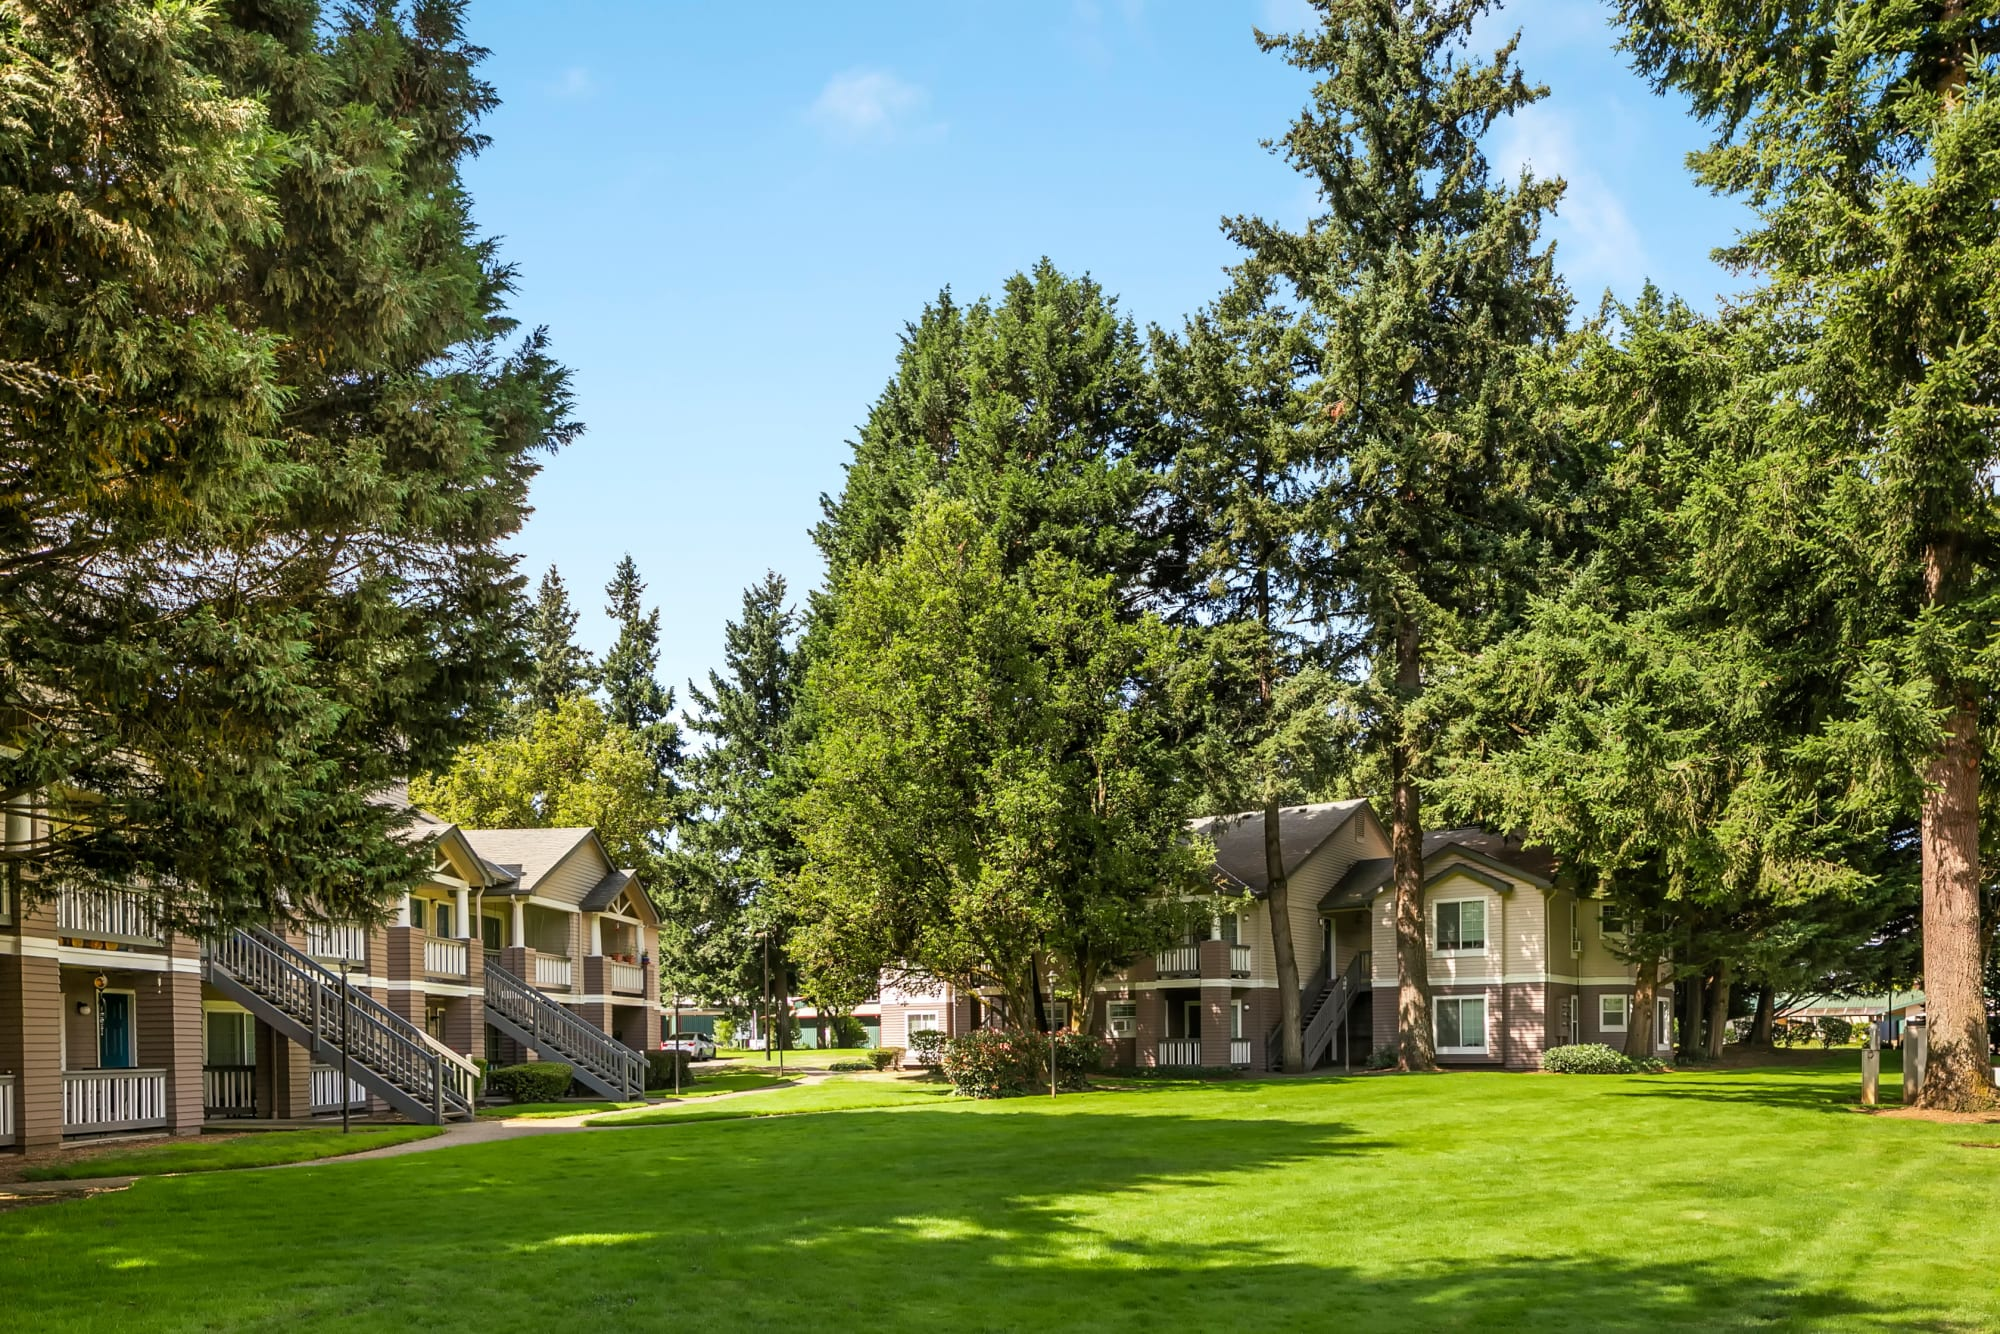 The building exterior and lush landscaping at Autumn Chase Apartments in Vancouver, Washington